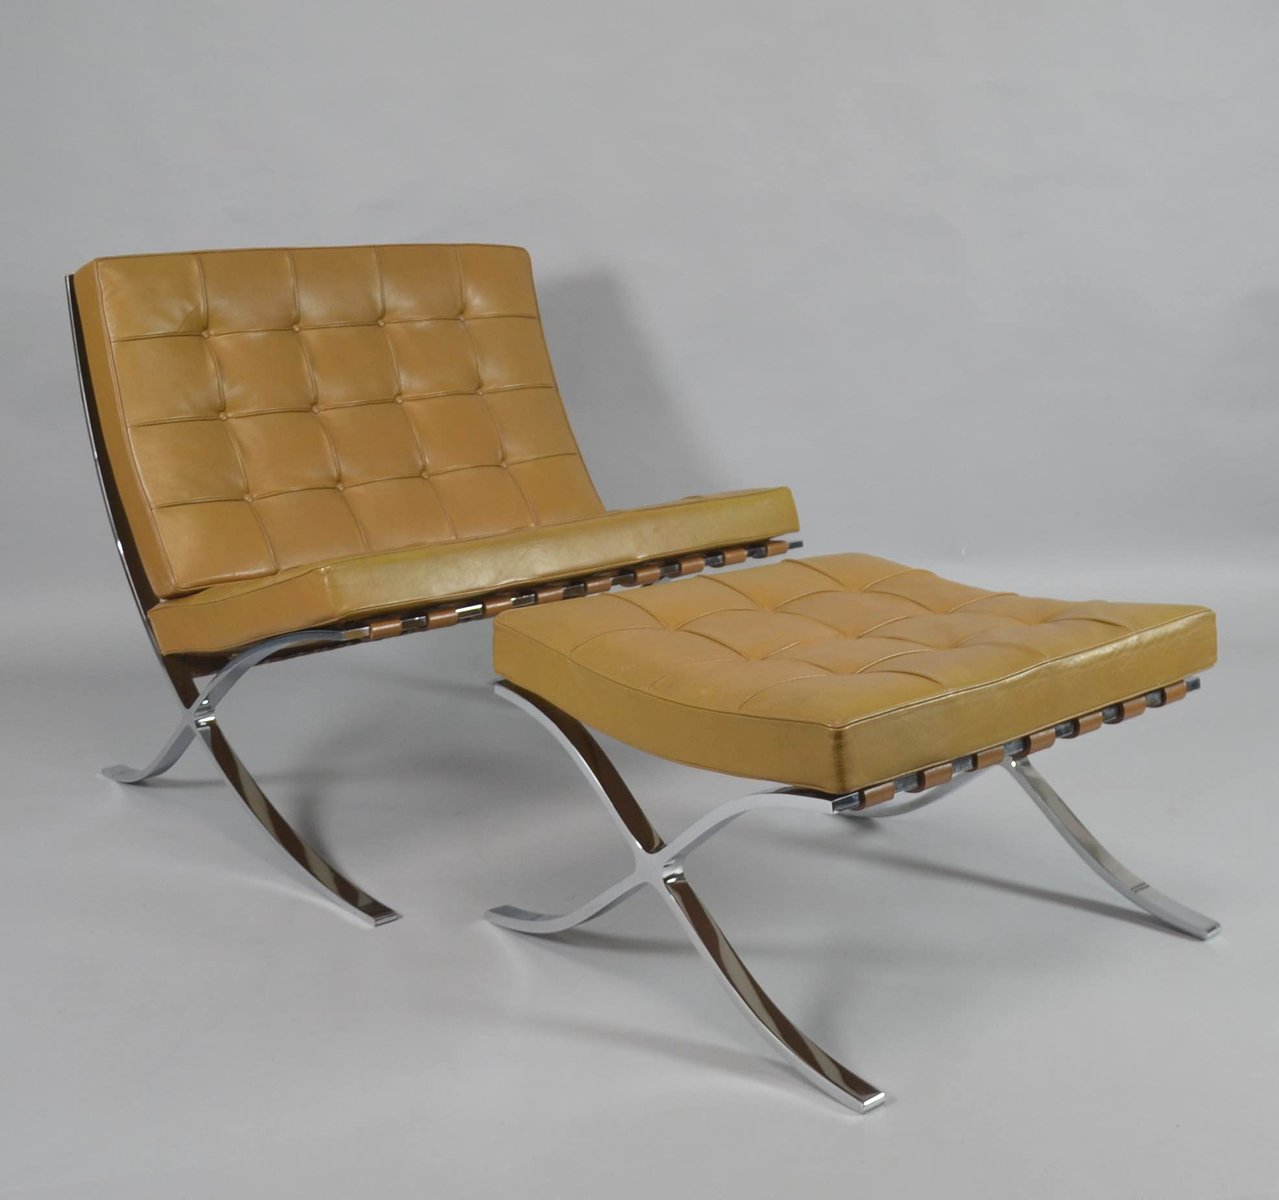 Genial Vintage Barcelona Chair With Ottoman By Ludwig Mies Van Der Rohe For Knoll  International